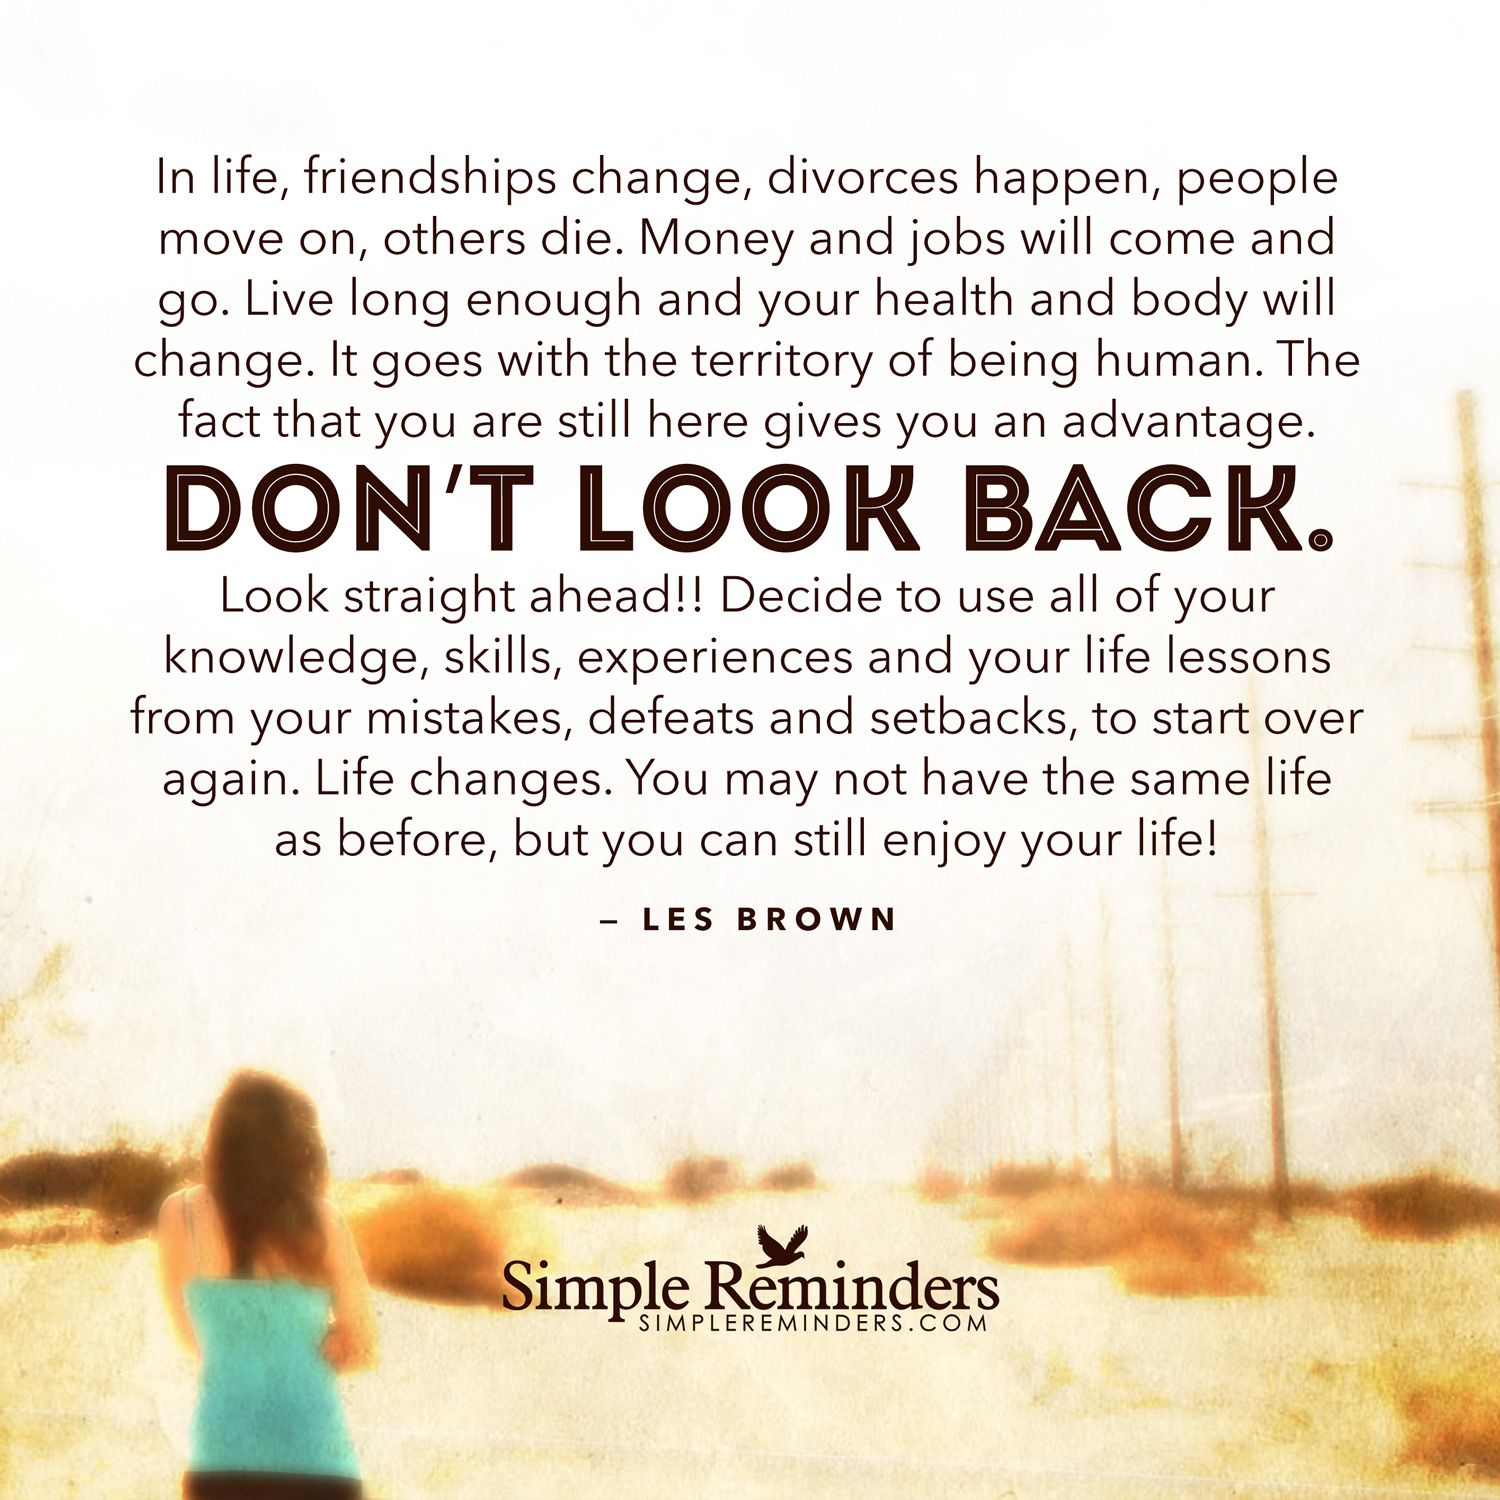 Change Or Die Quote: Do Not Look Back In Life, Friendships Change, Divorces